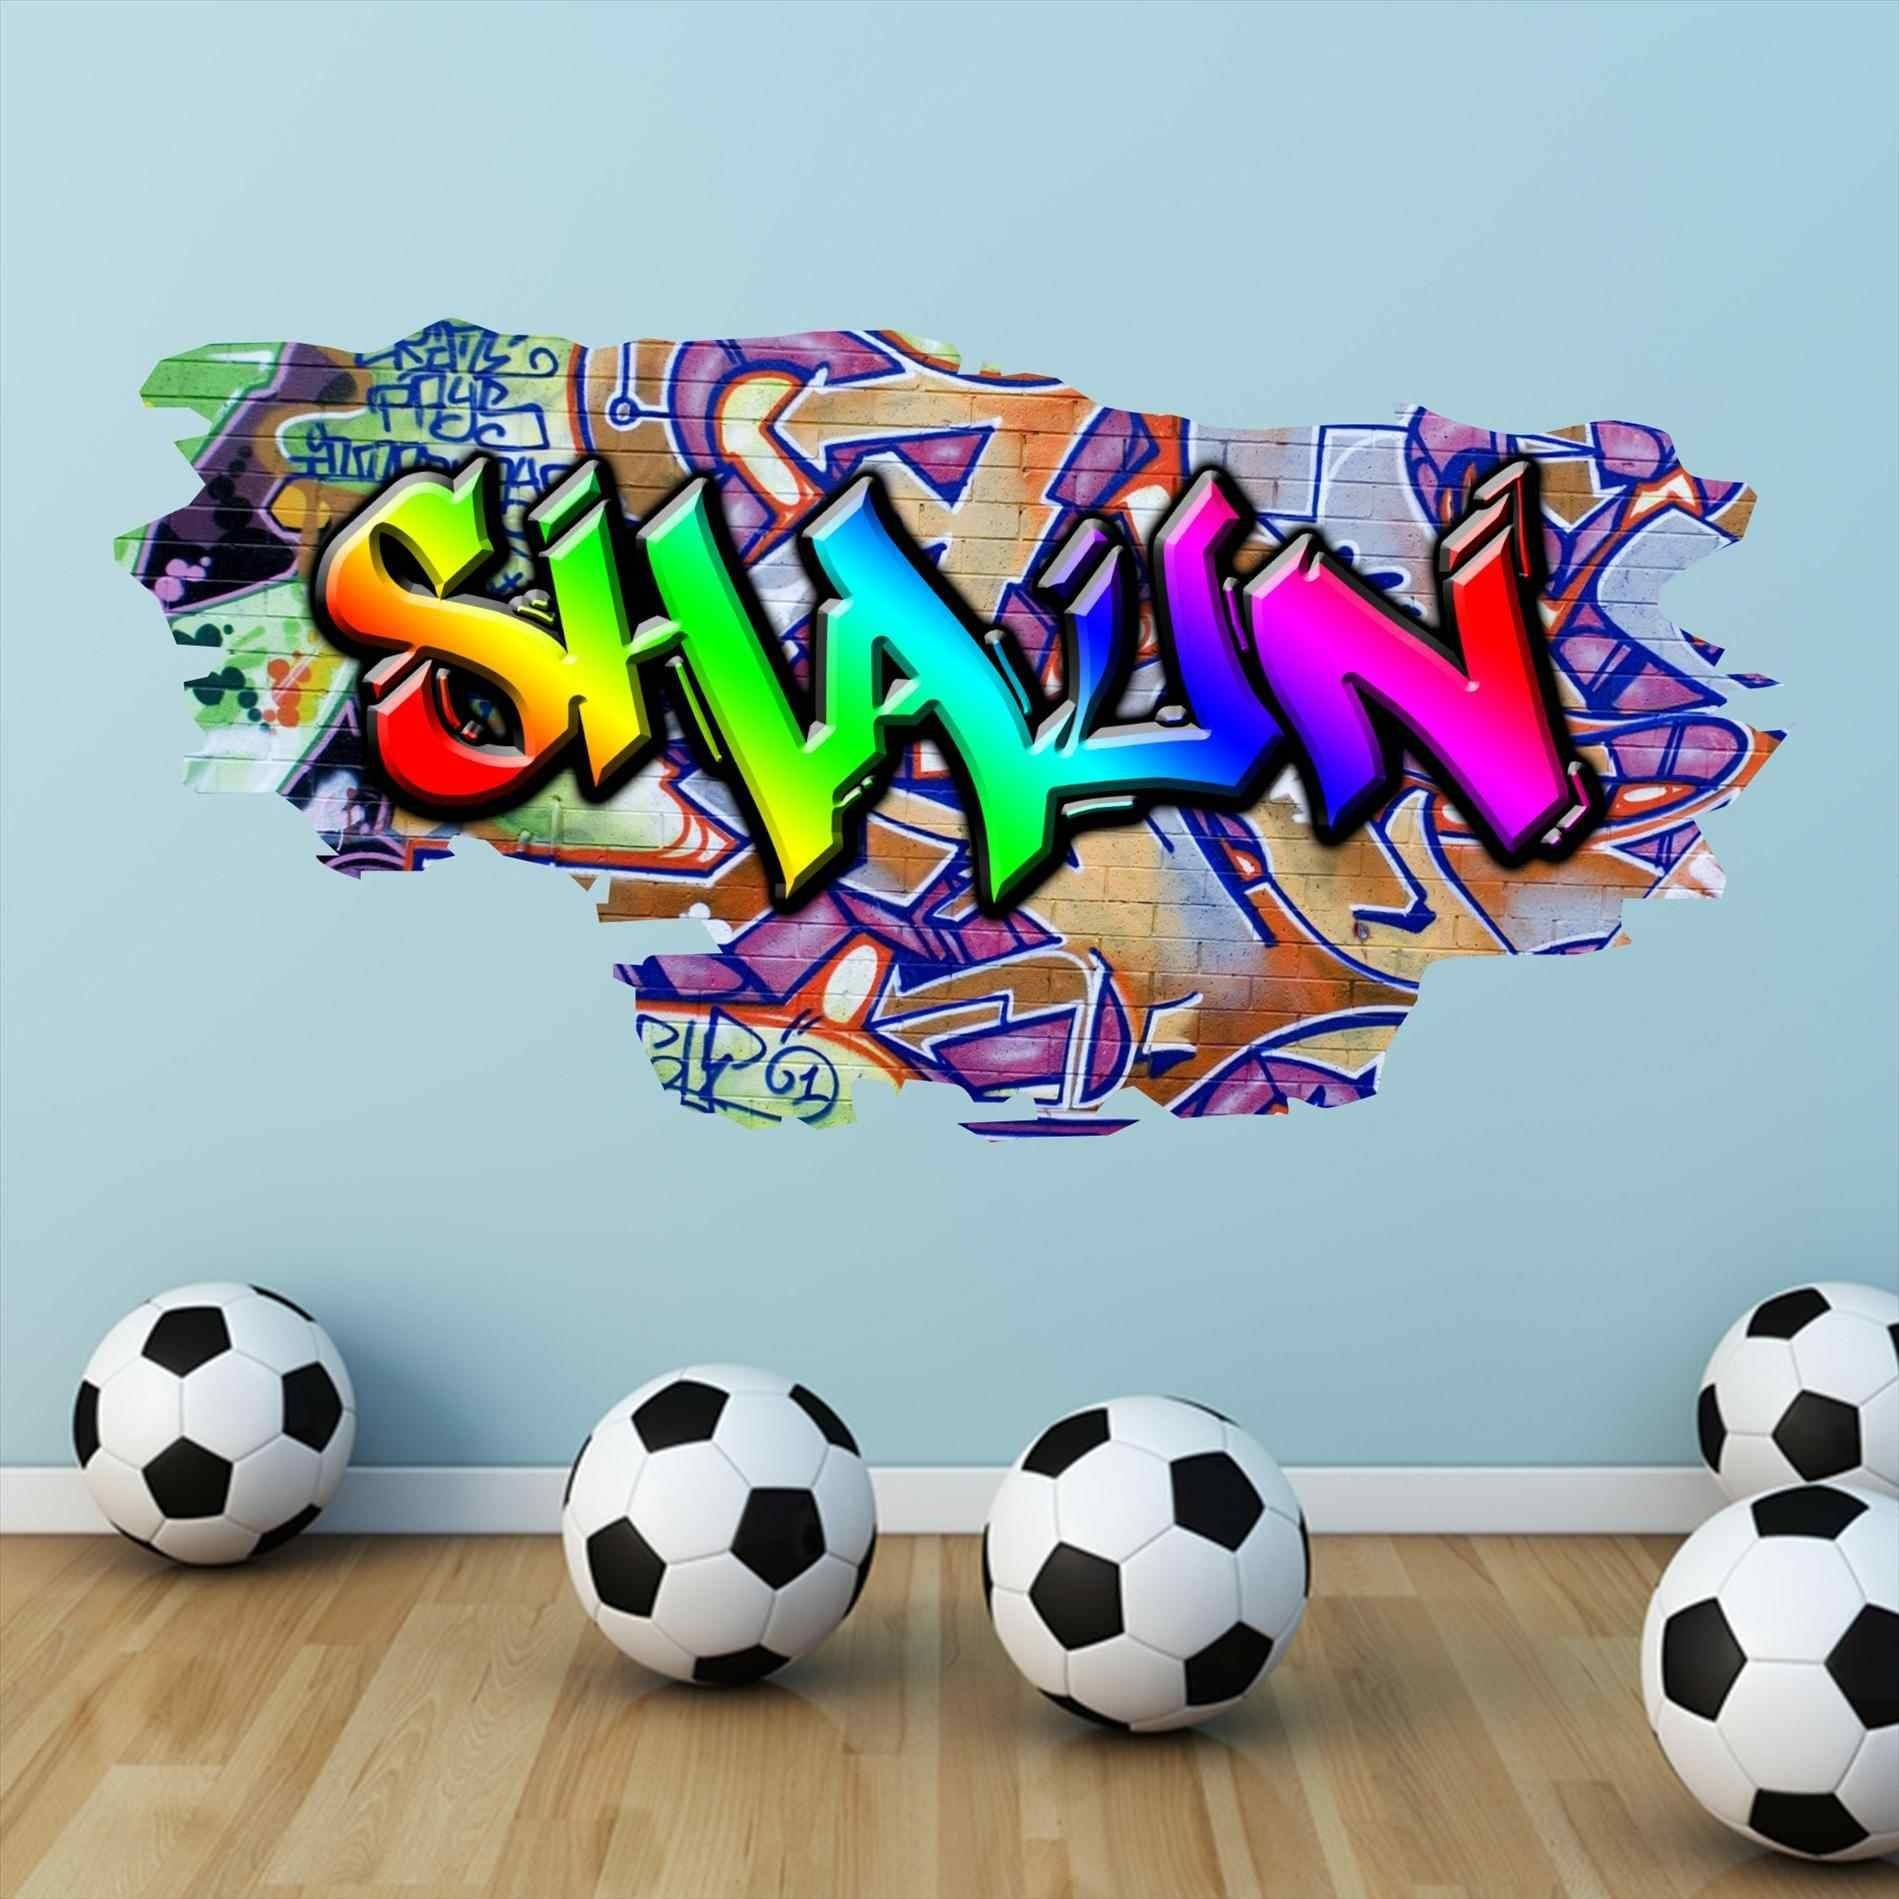 Personalized Graffiti Wall Decals | Home Interior Decor Intended For Most Recent Personalized Graffiti Wall Art (View 16 of 30)